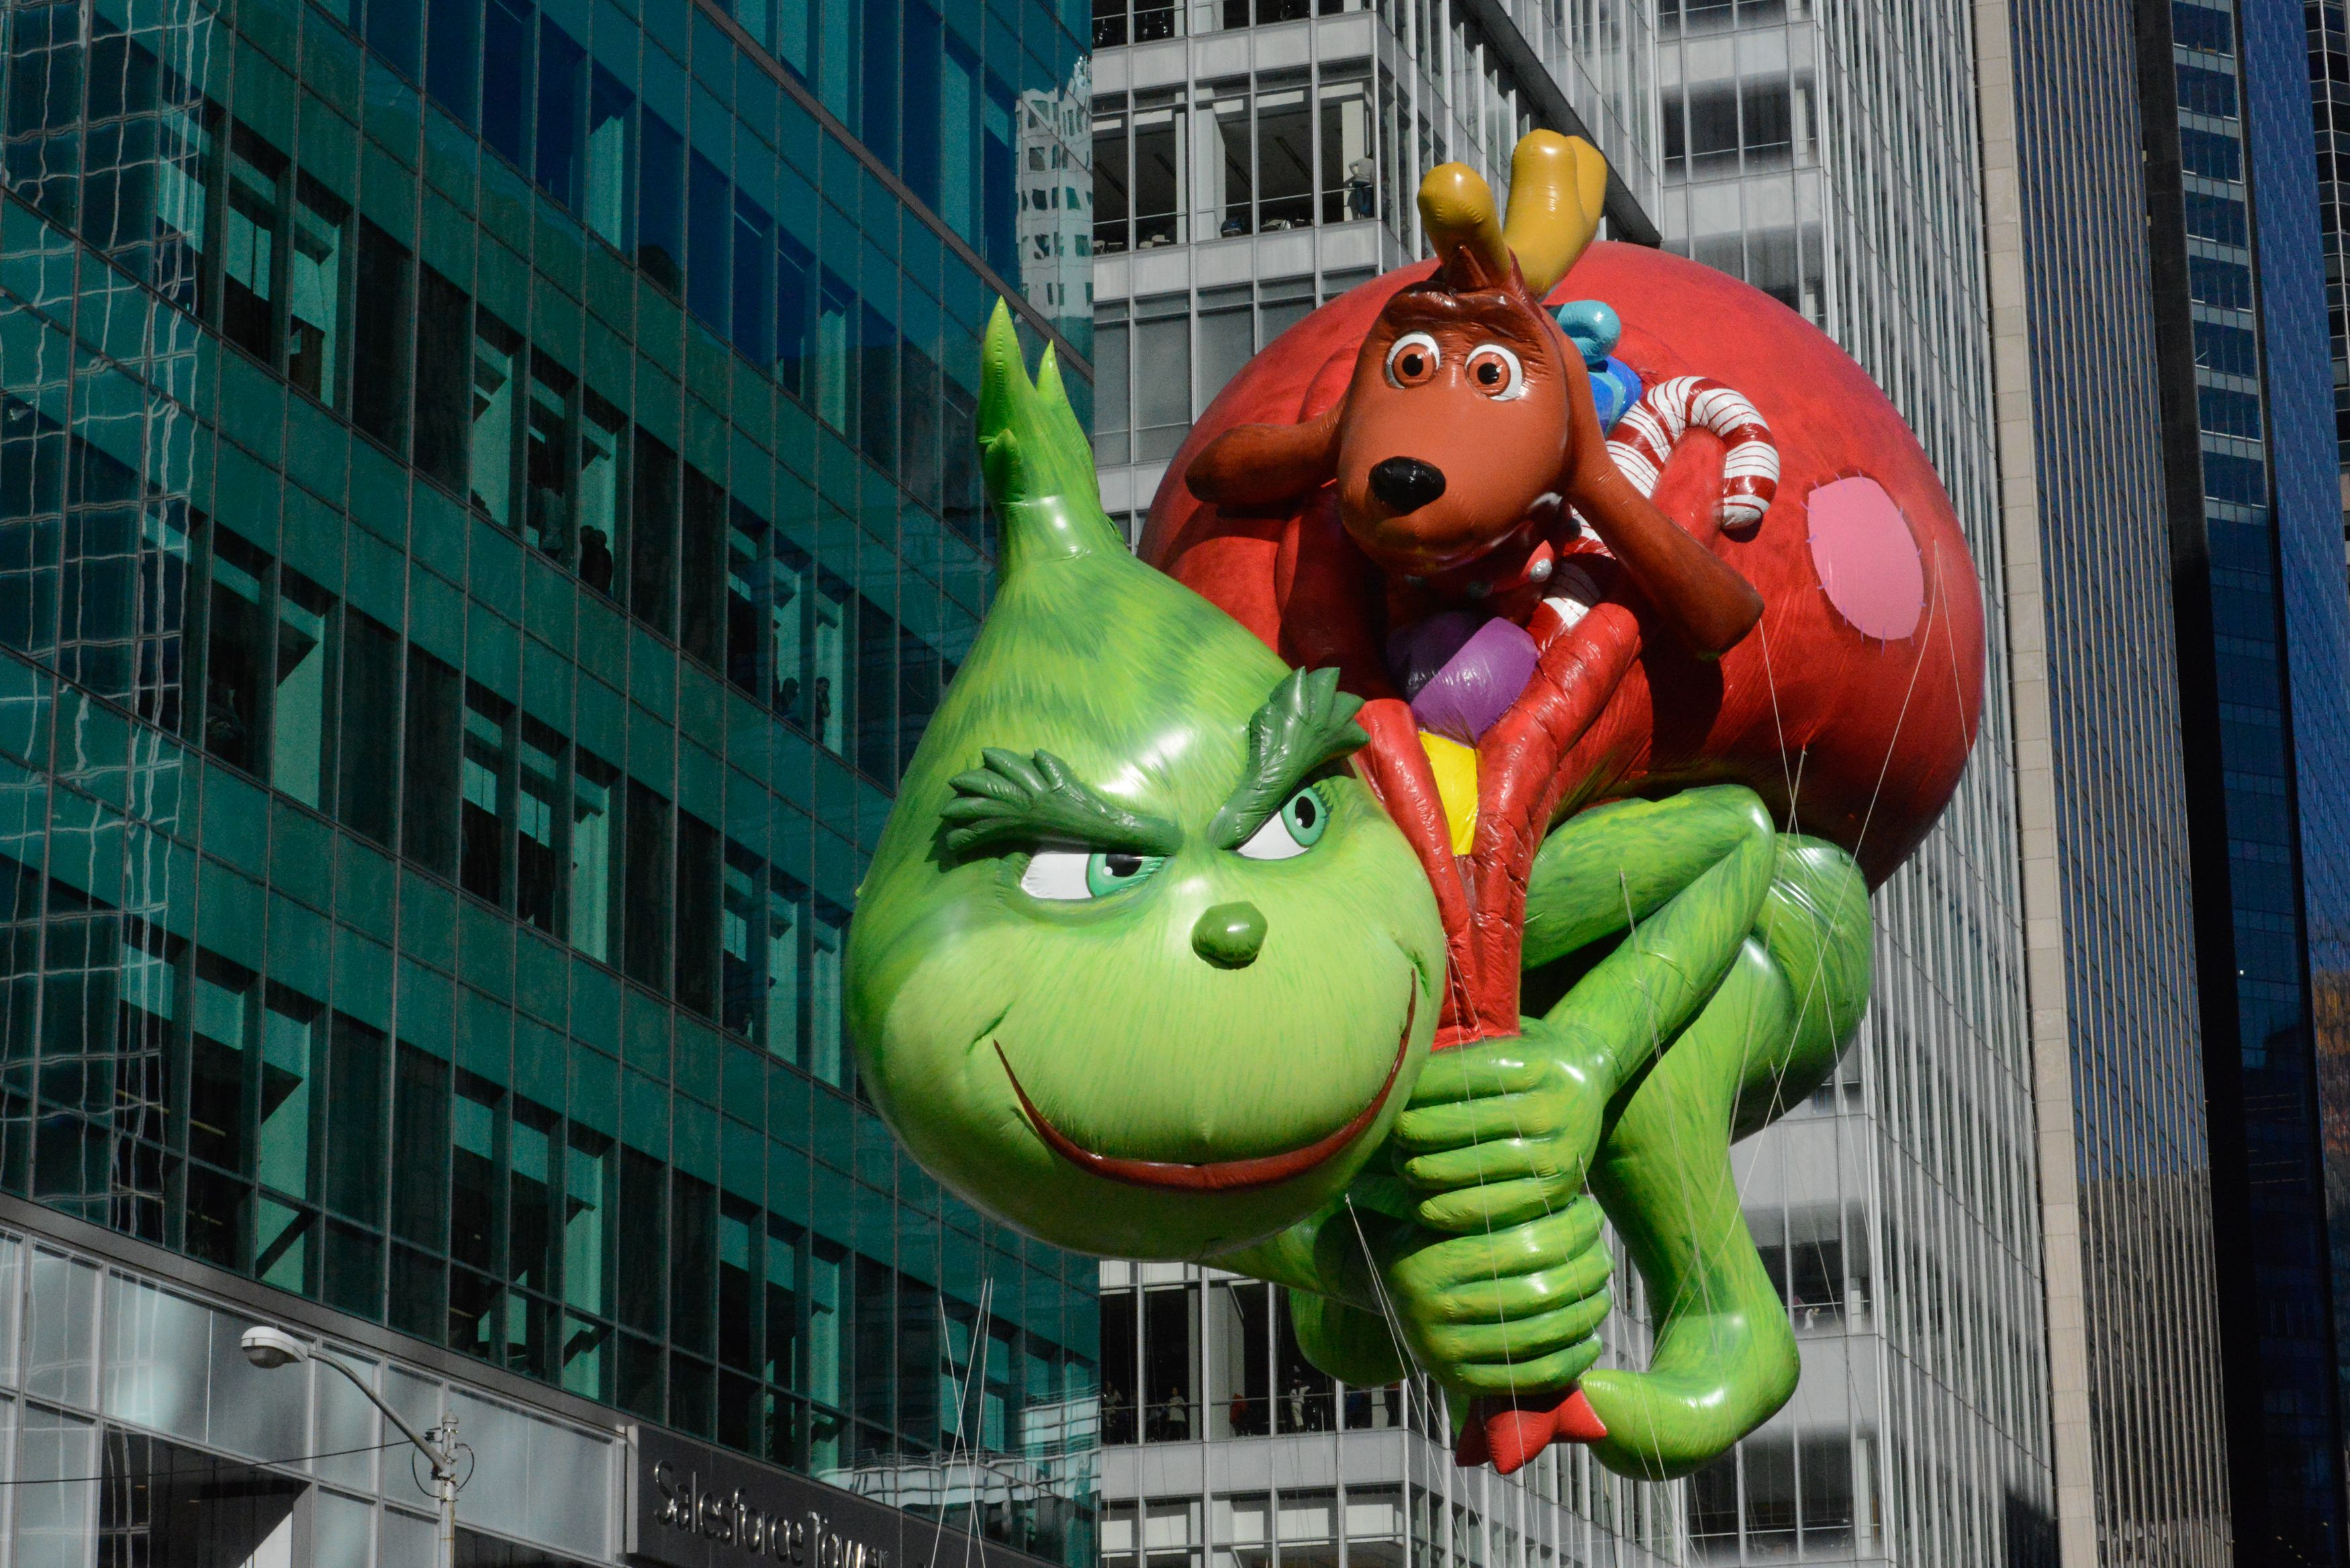 Pin On Macy S Thanksgiving Day Parade